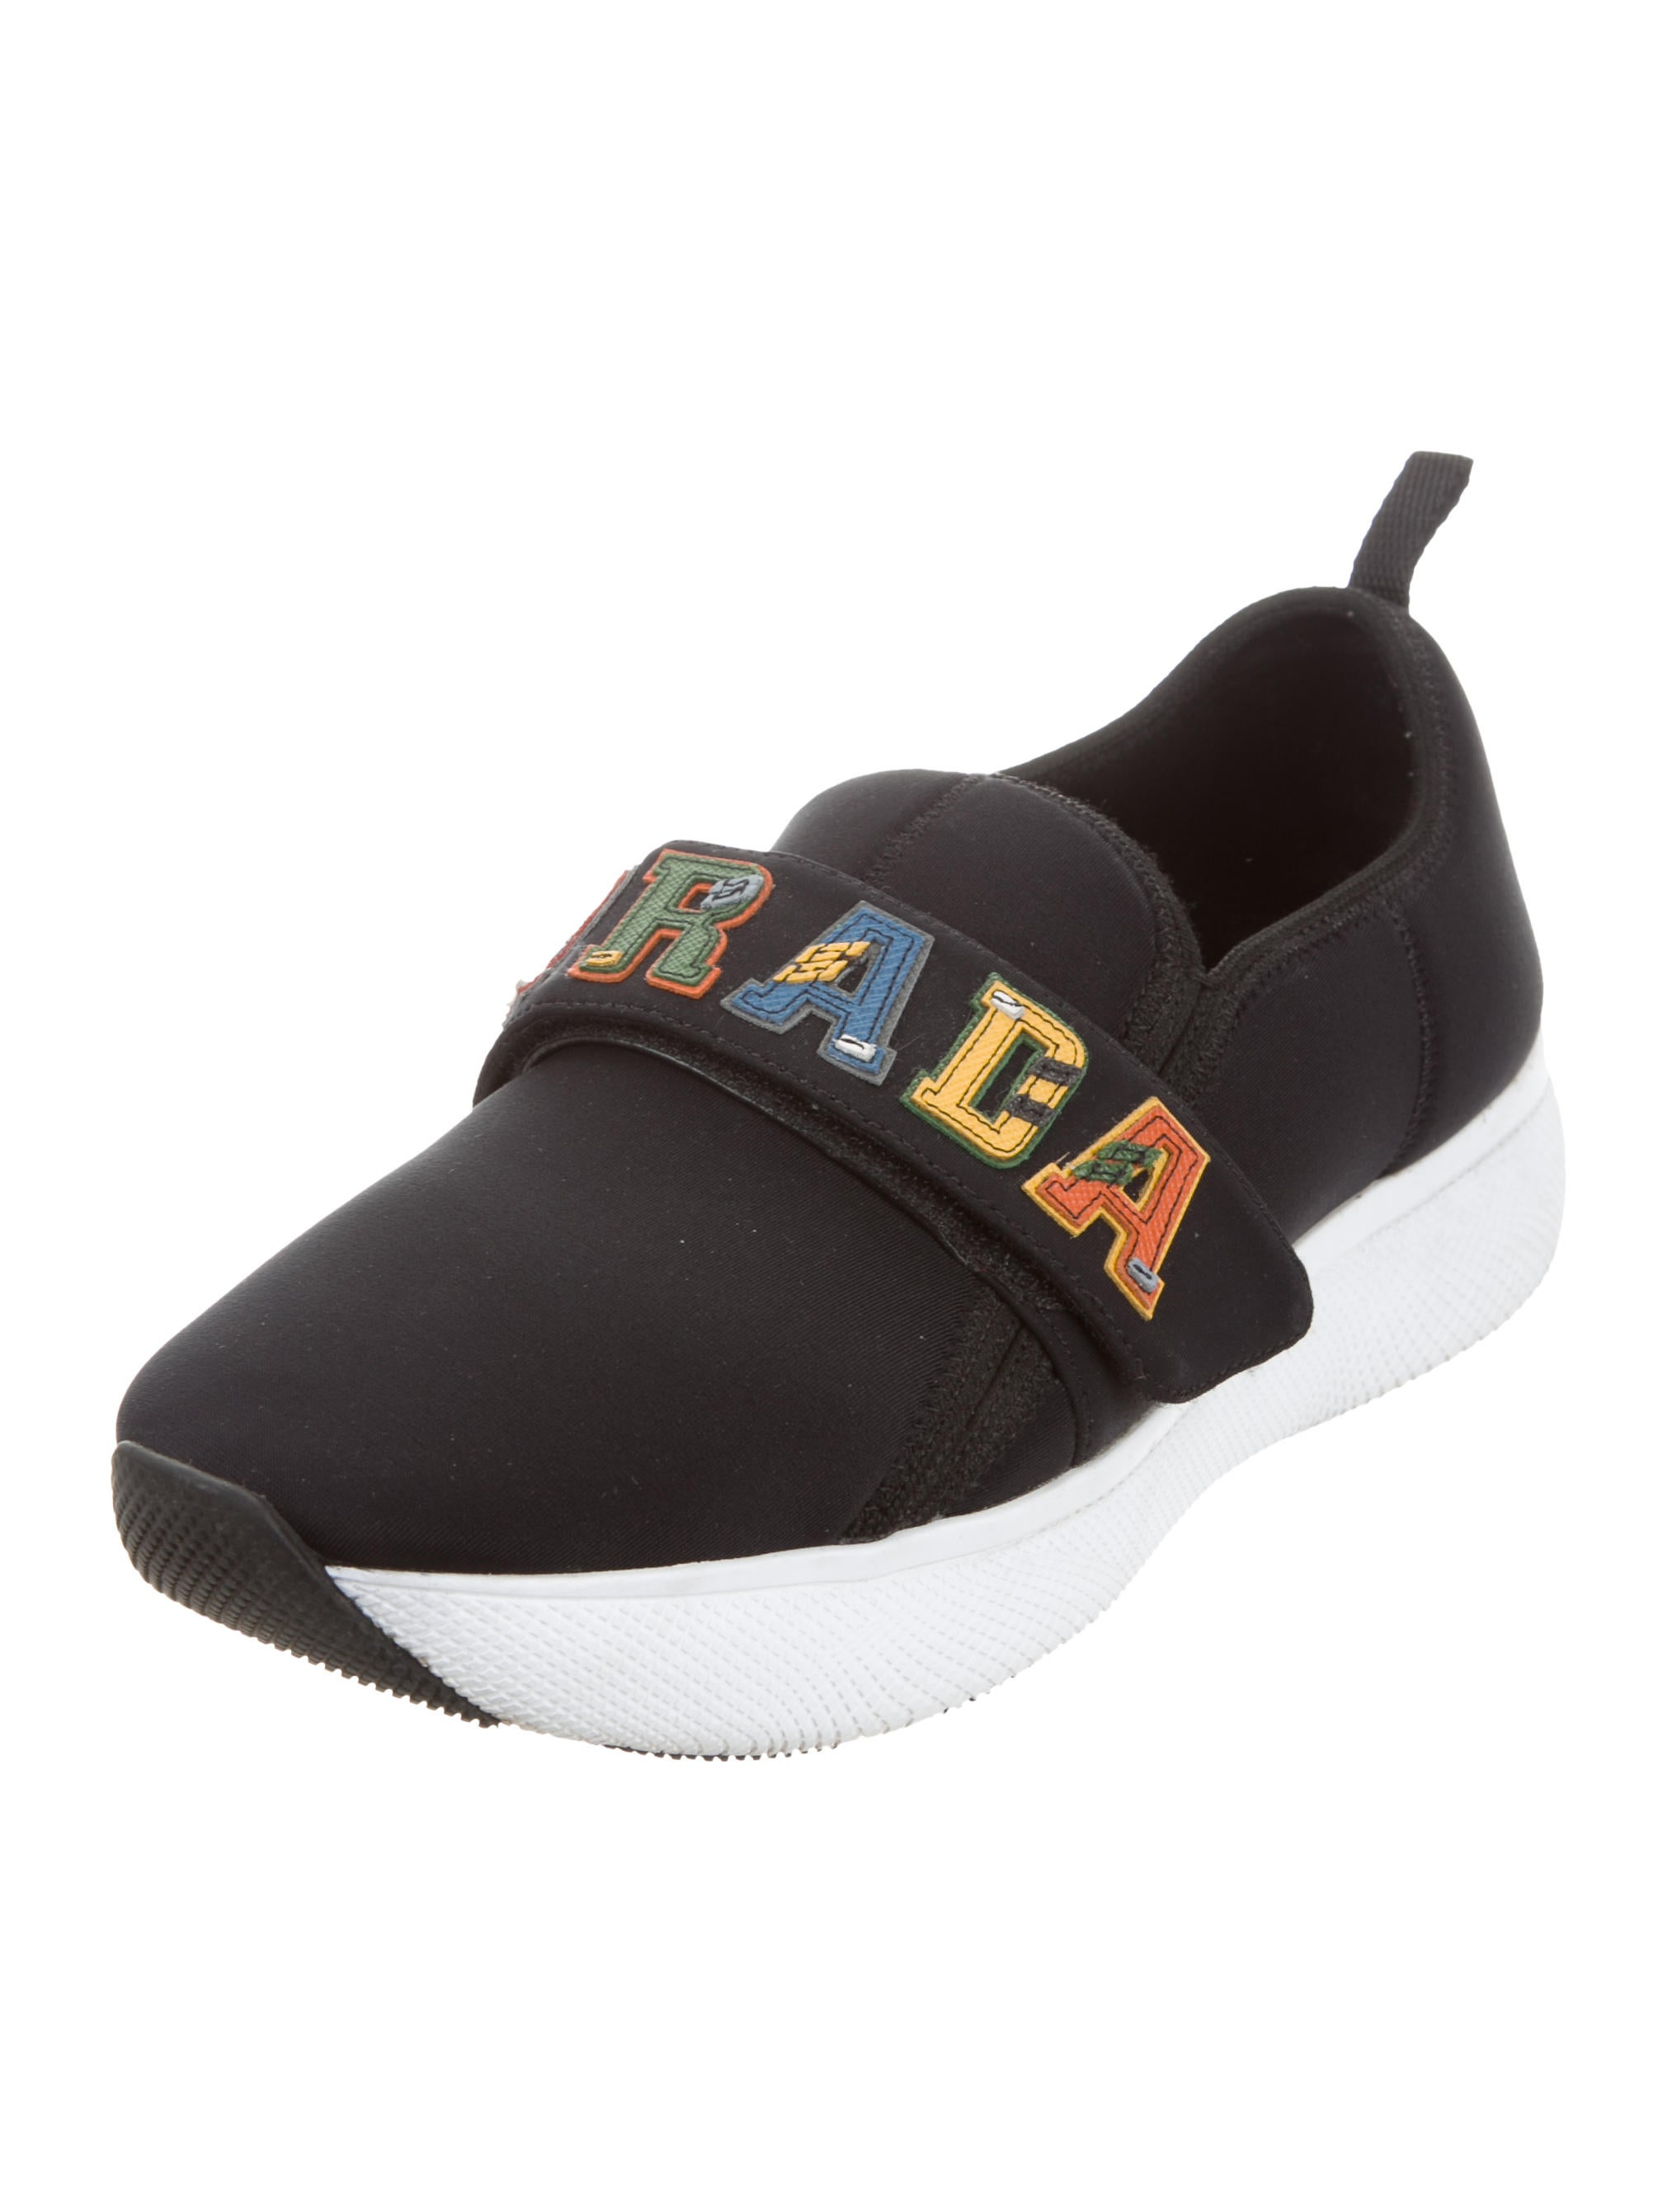 outlet good selling Prada 2018 Grip-Strap Sneakers clearance fake cheap sale 2014 H2HiCWft5